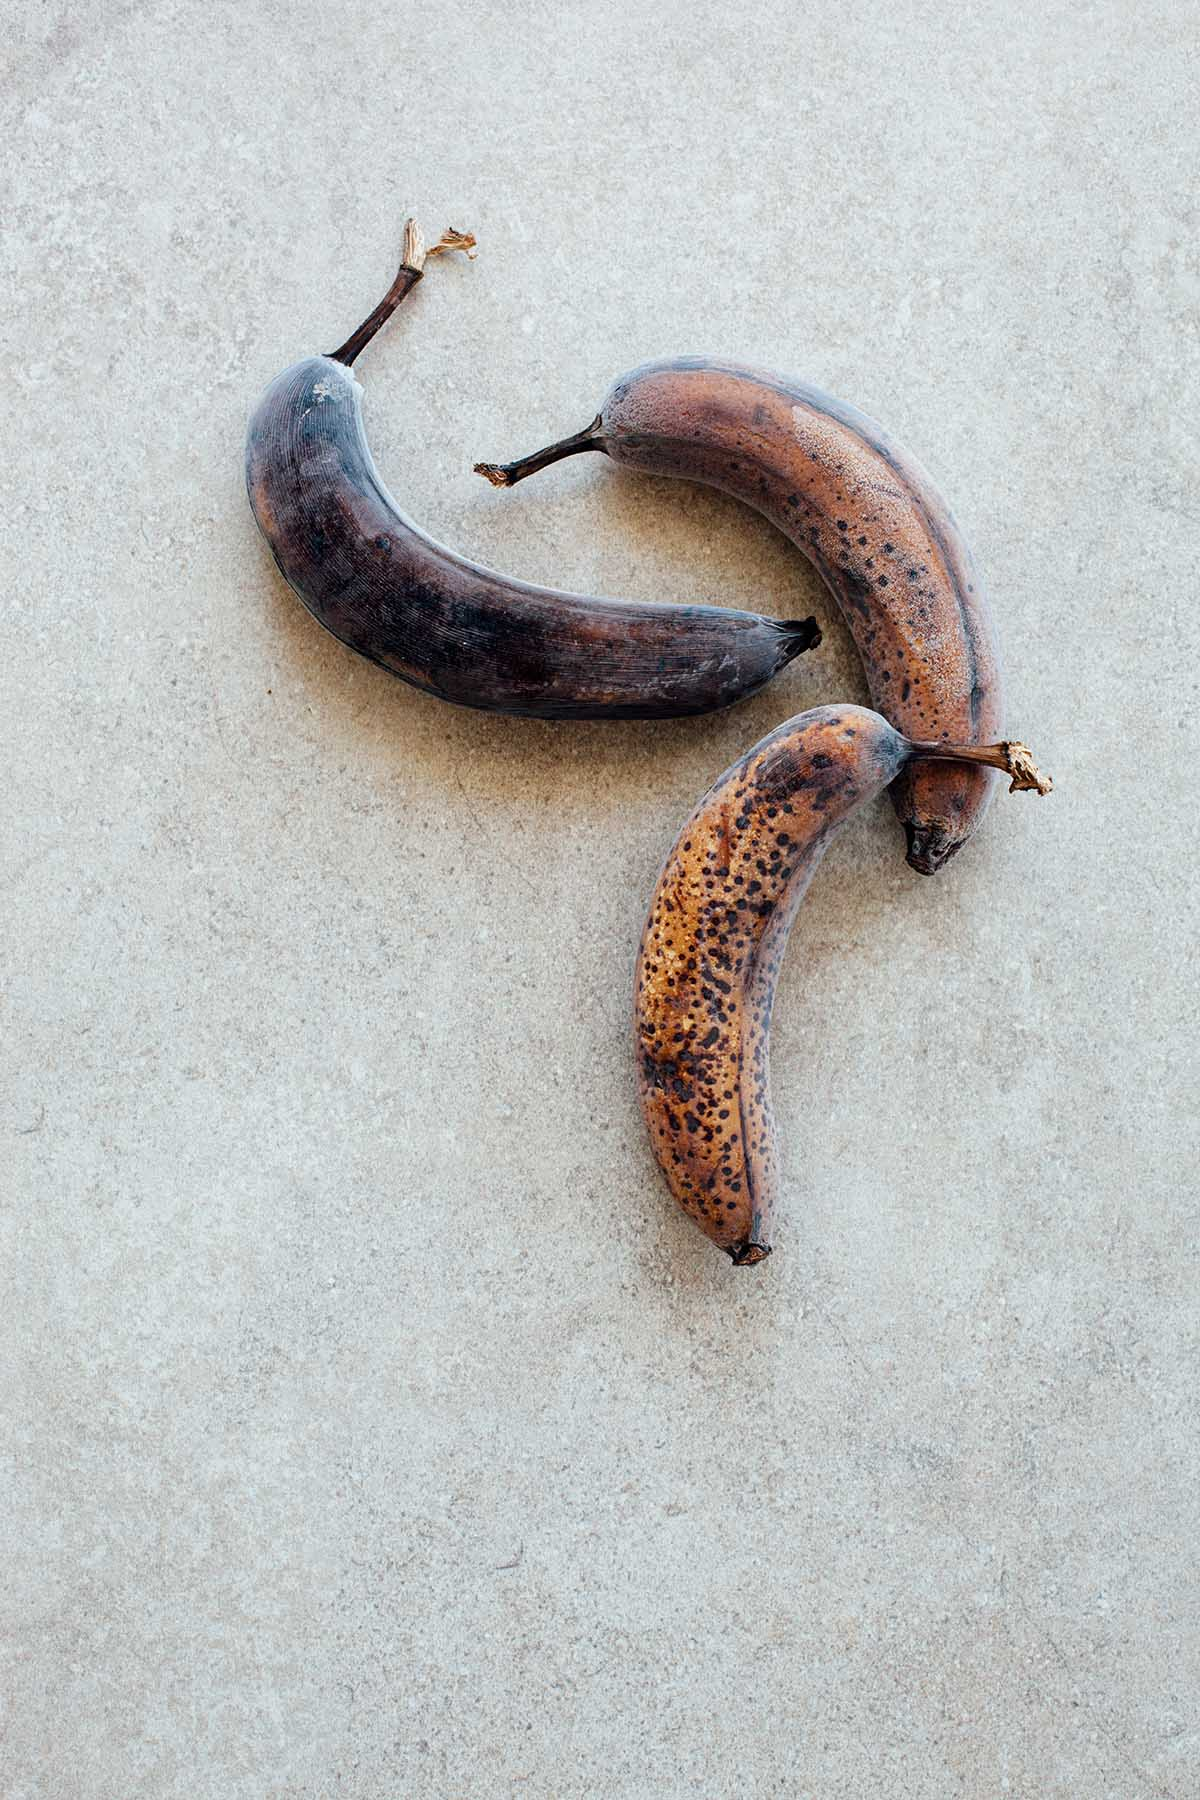 Frozen overripe bananas on a stone background.